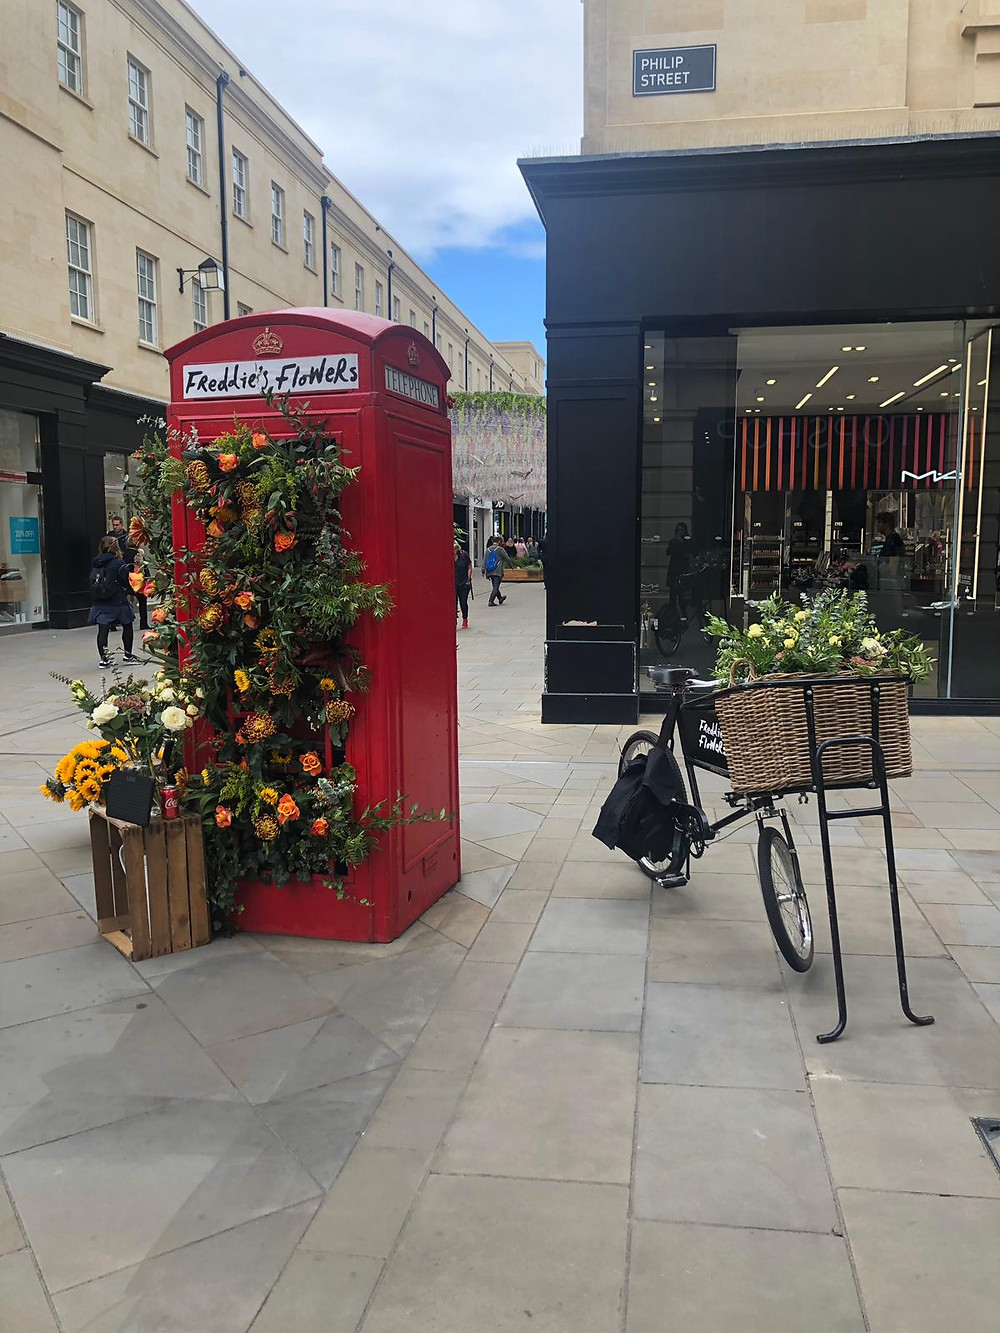 A red telephone box in Bath city centre turned into a flower stand